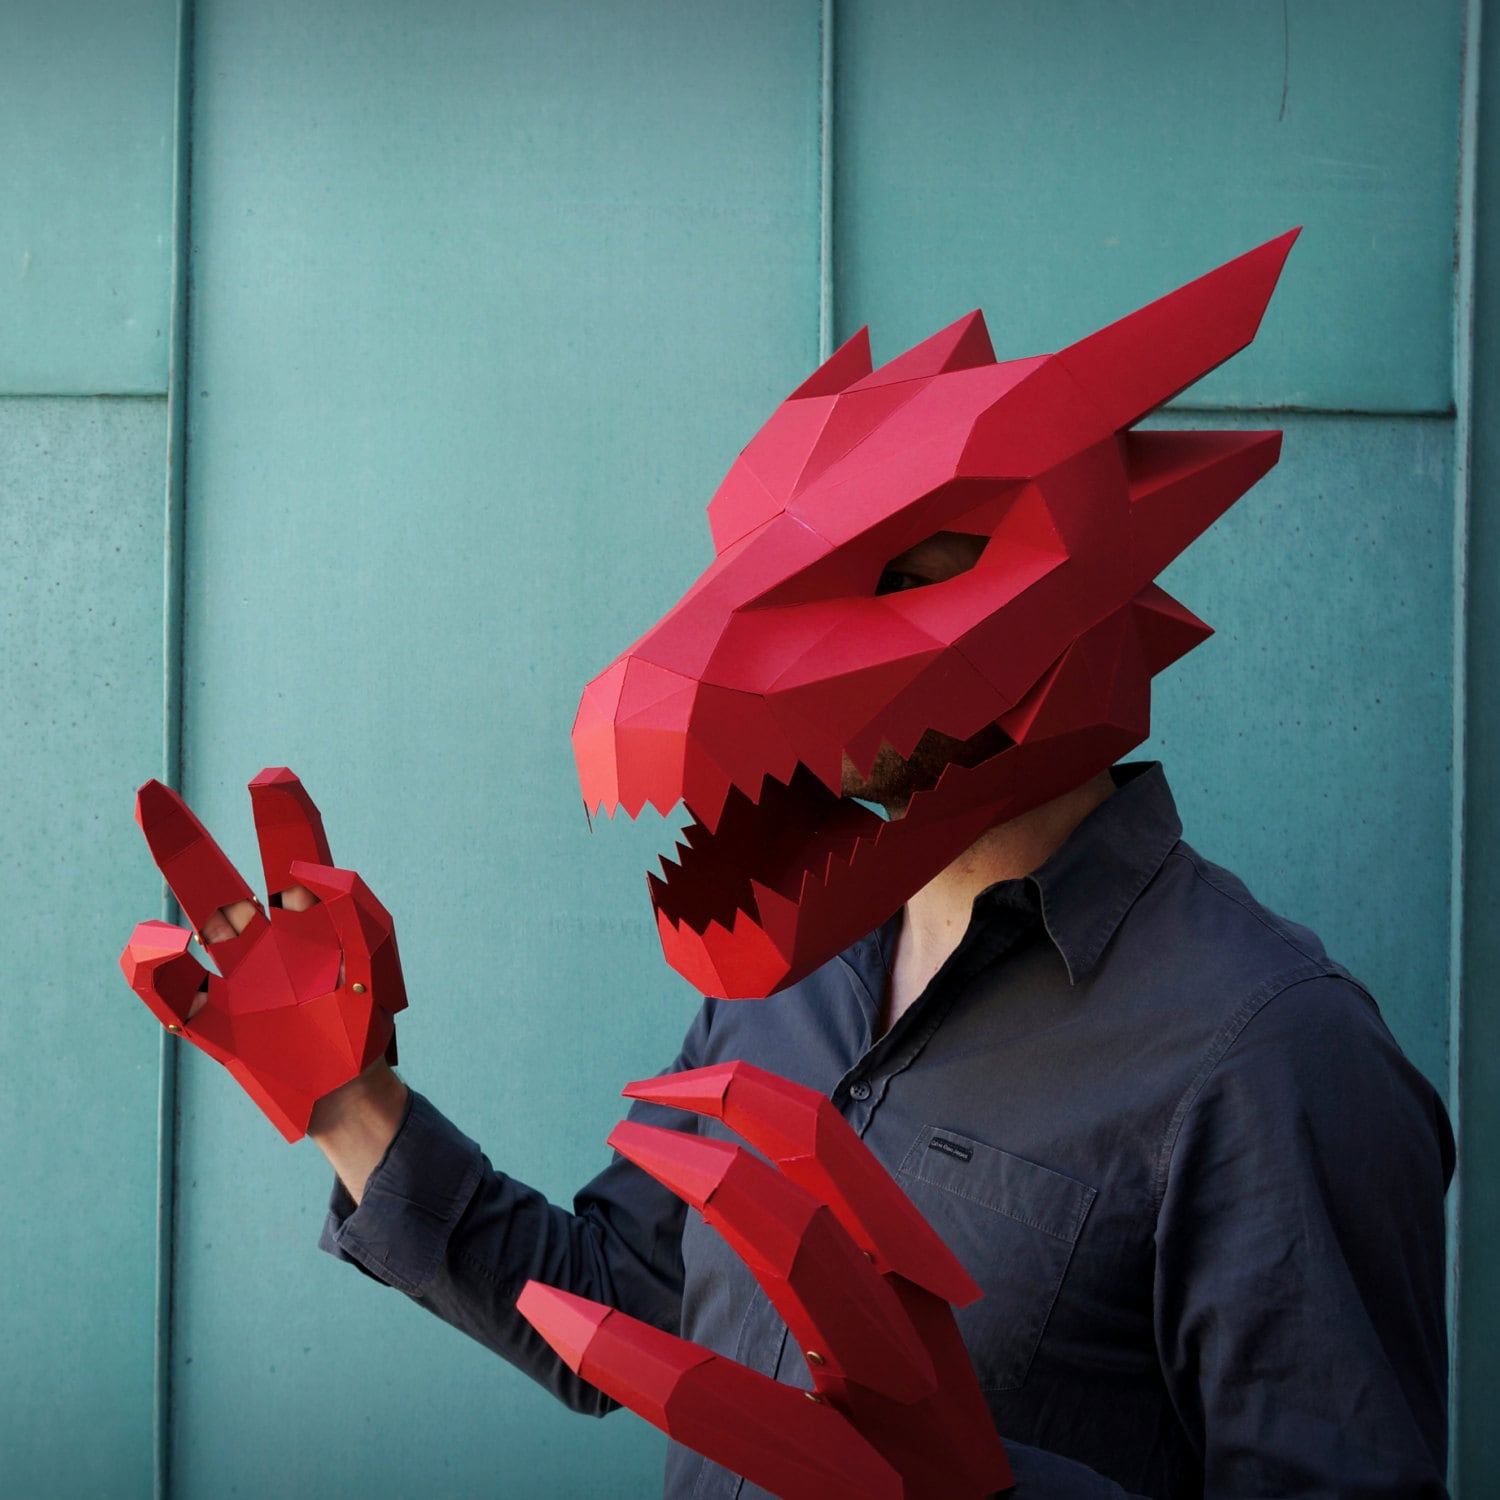 Diy halloween costumes etsy dragon mask v2 make your own card mask with this simple pdf template solutioingenieria Choice Image